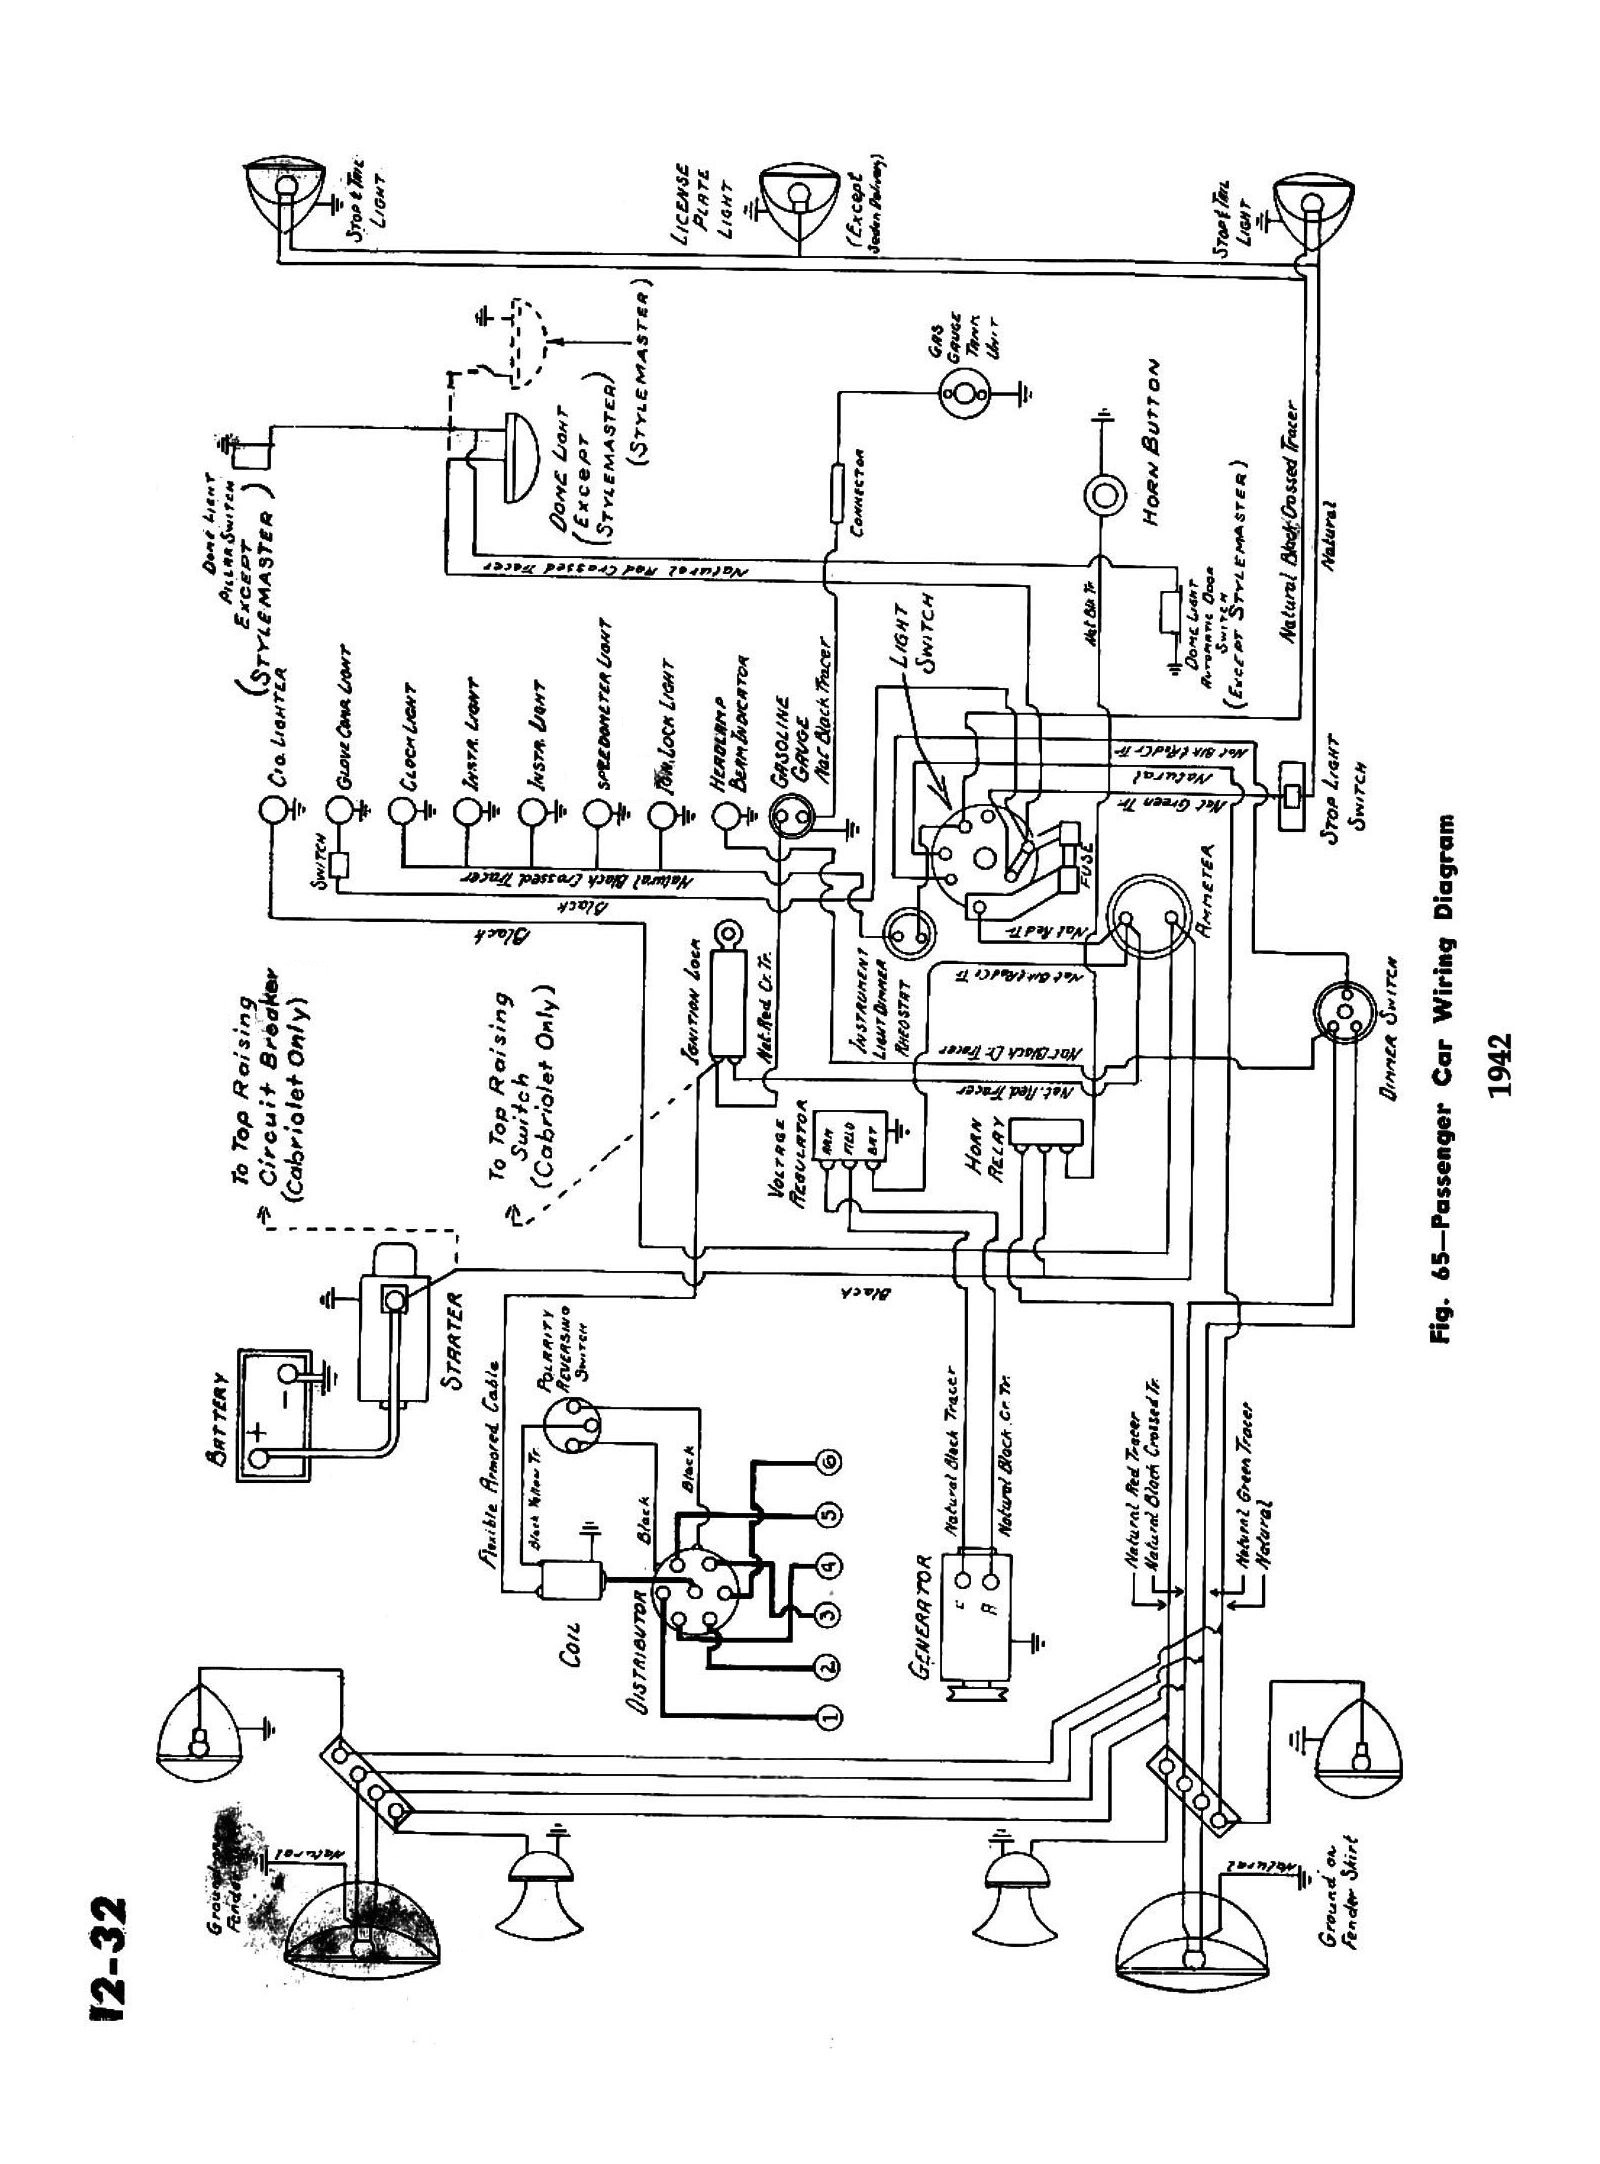 Ignition Wiring On A 1950 Chevy Library Starter Switch Diagram 2003 Truck Data Schema Omc 1970